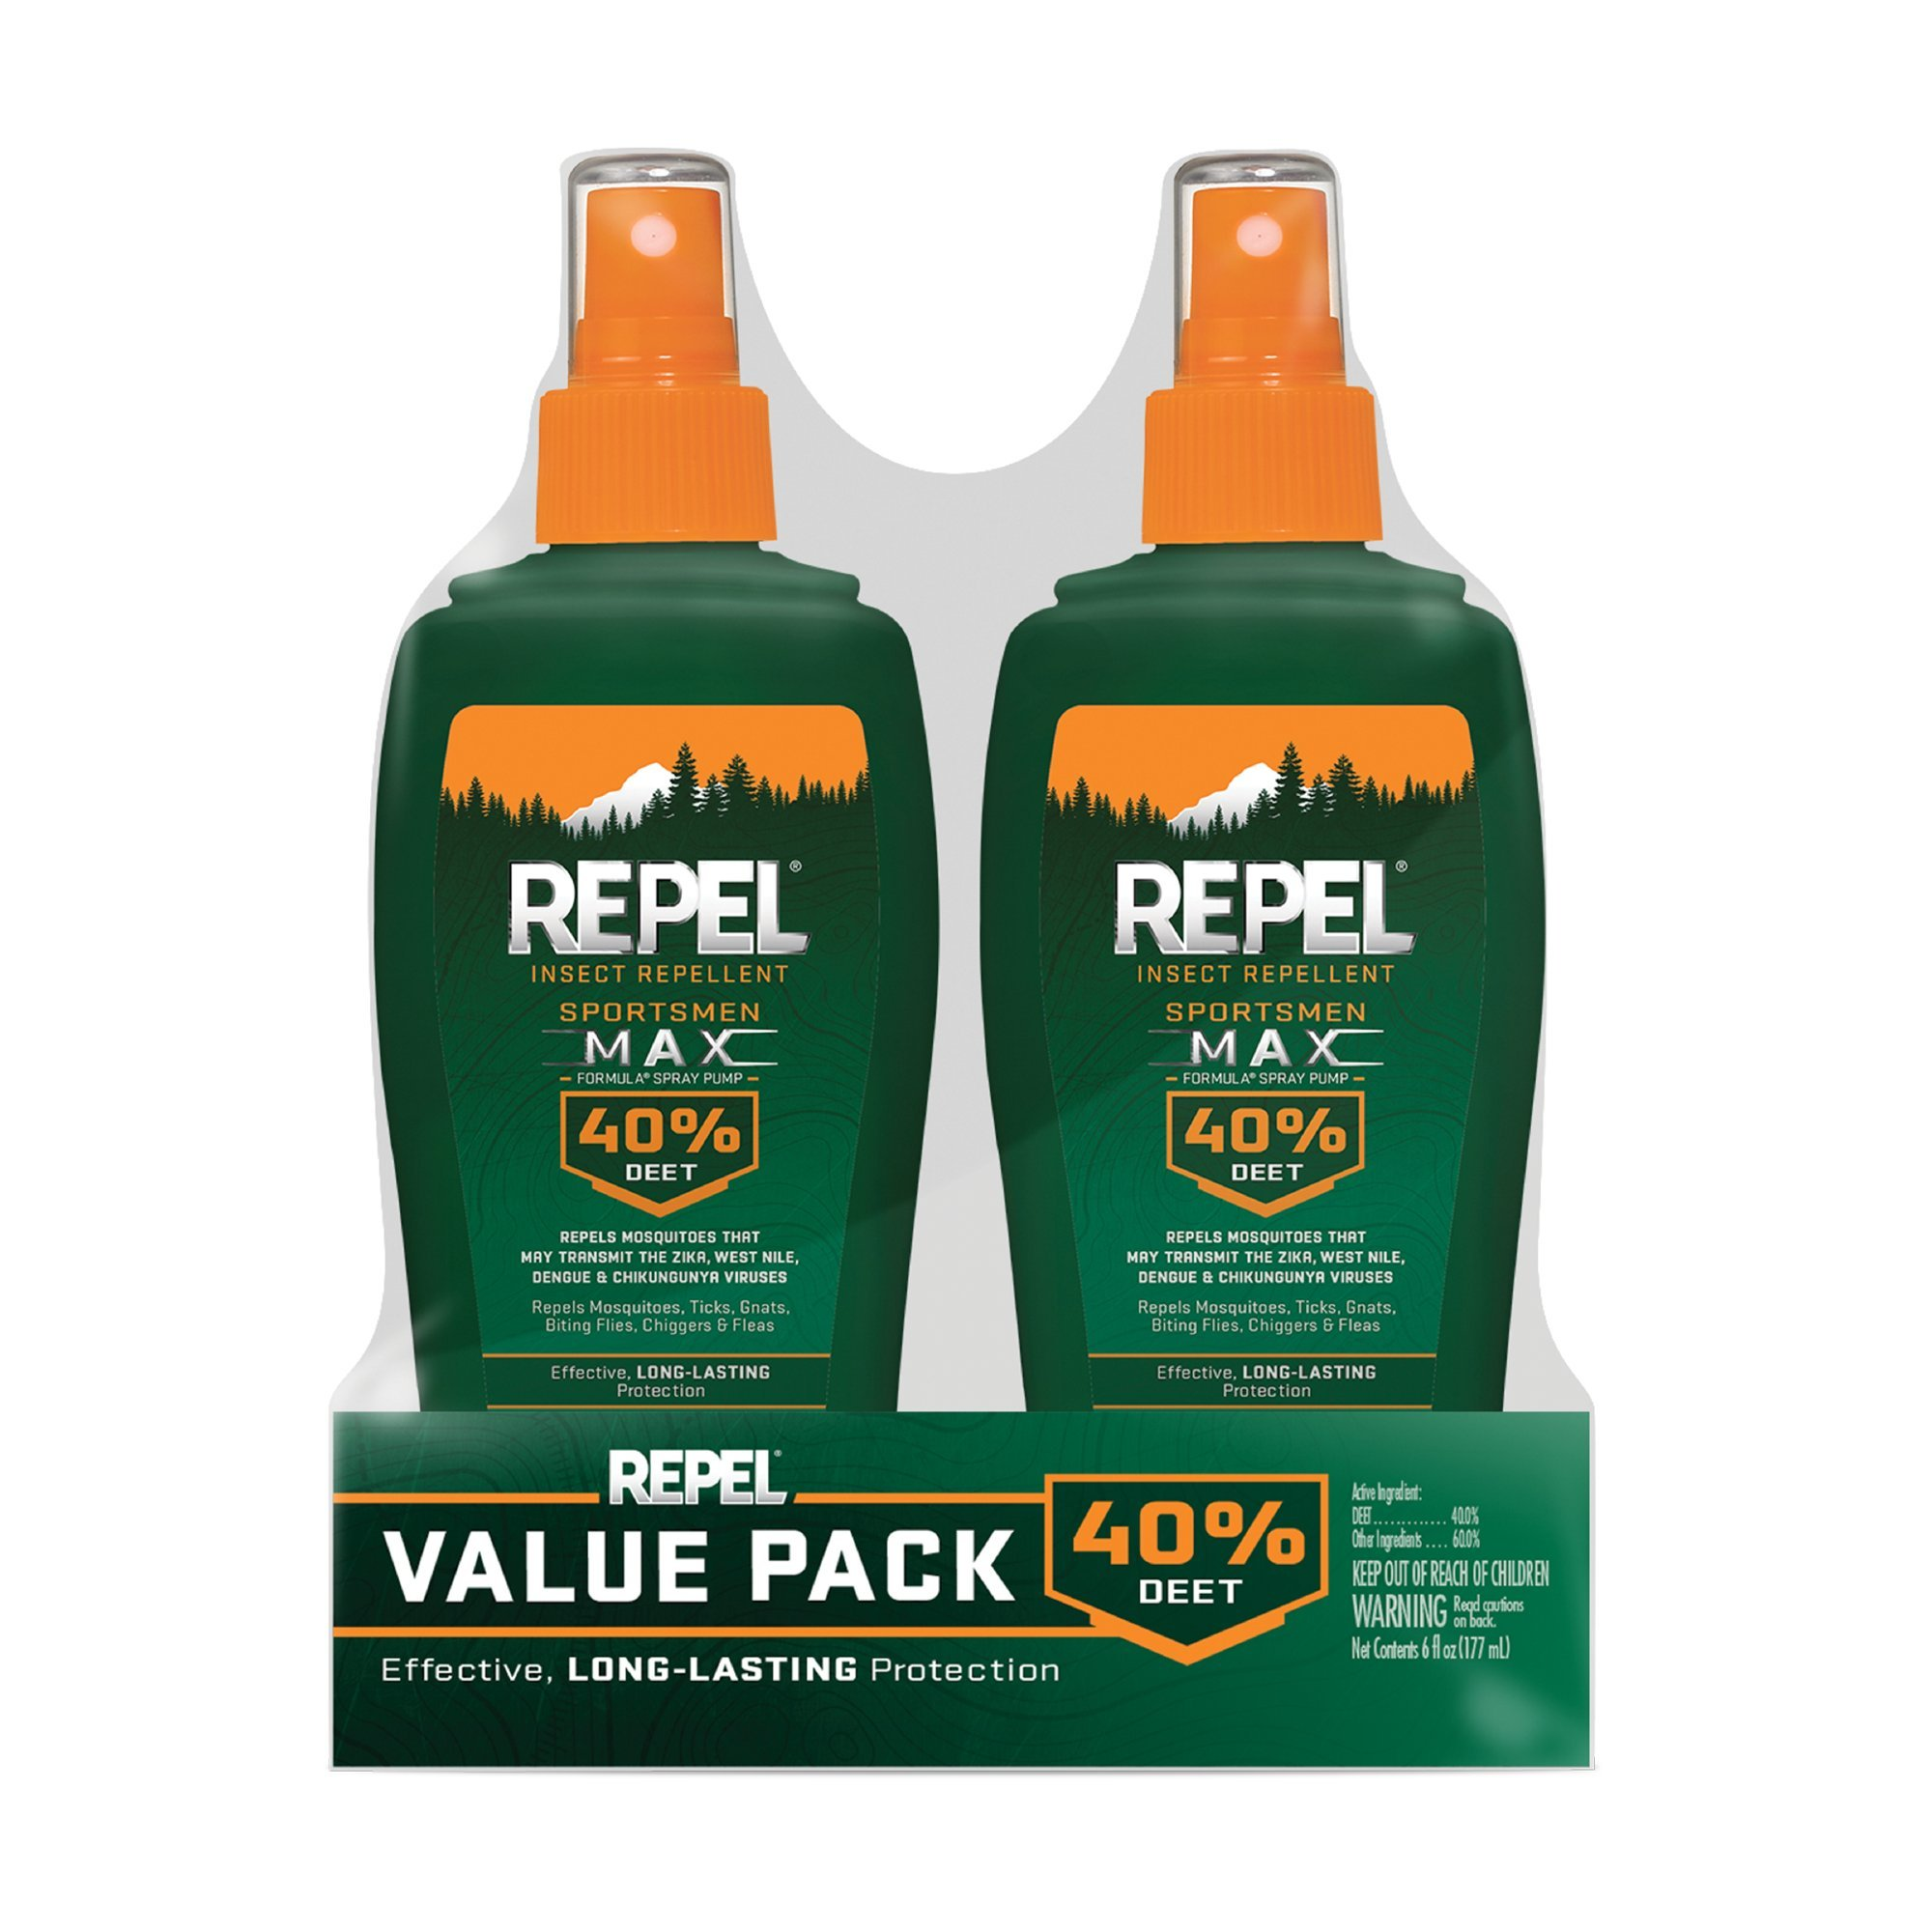 Repel Sportsmen Max Insect Repellent Pump Spray, 6-oz, 2-PK by Repel